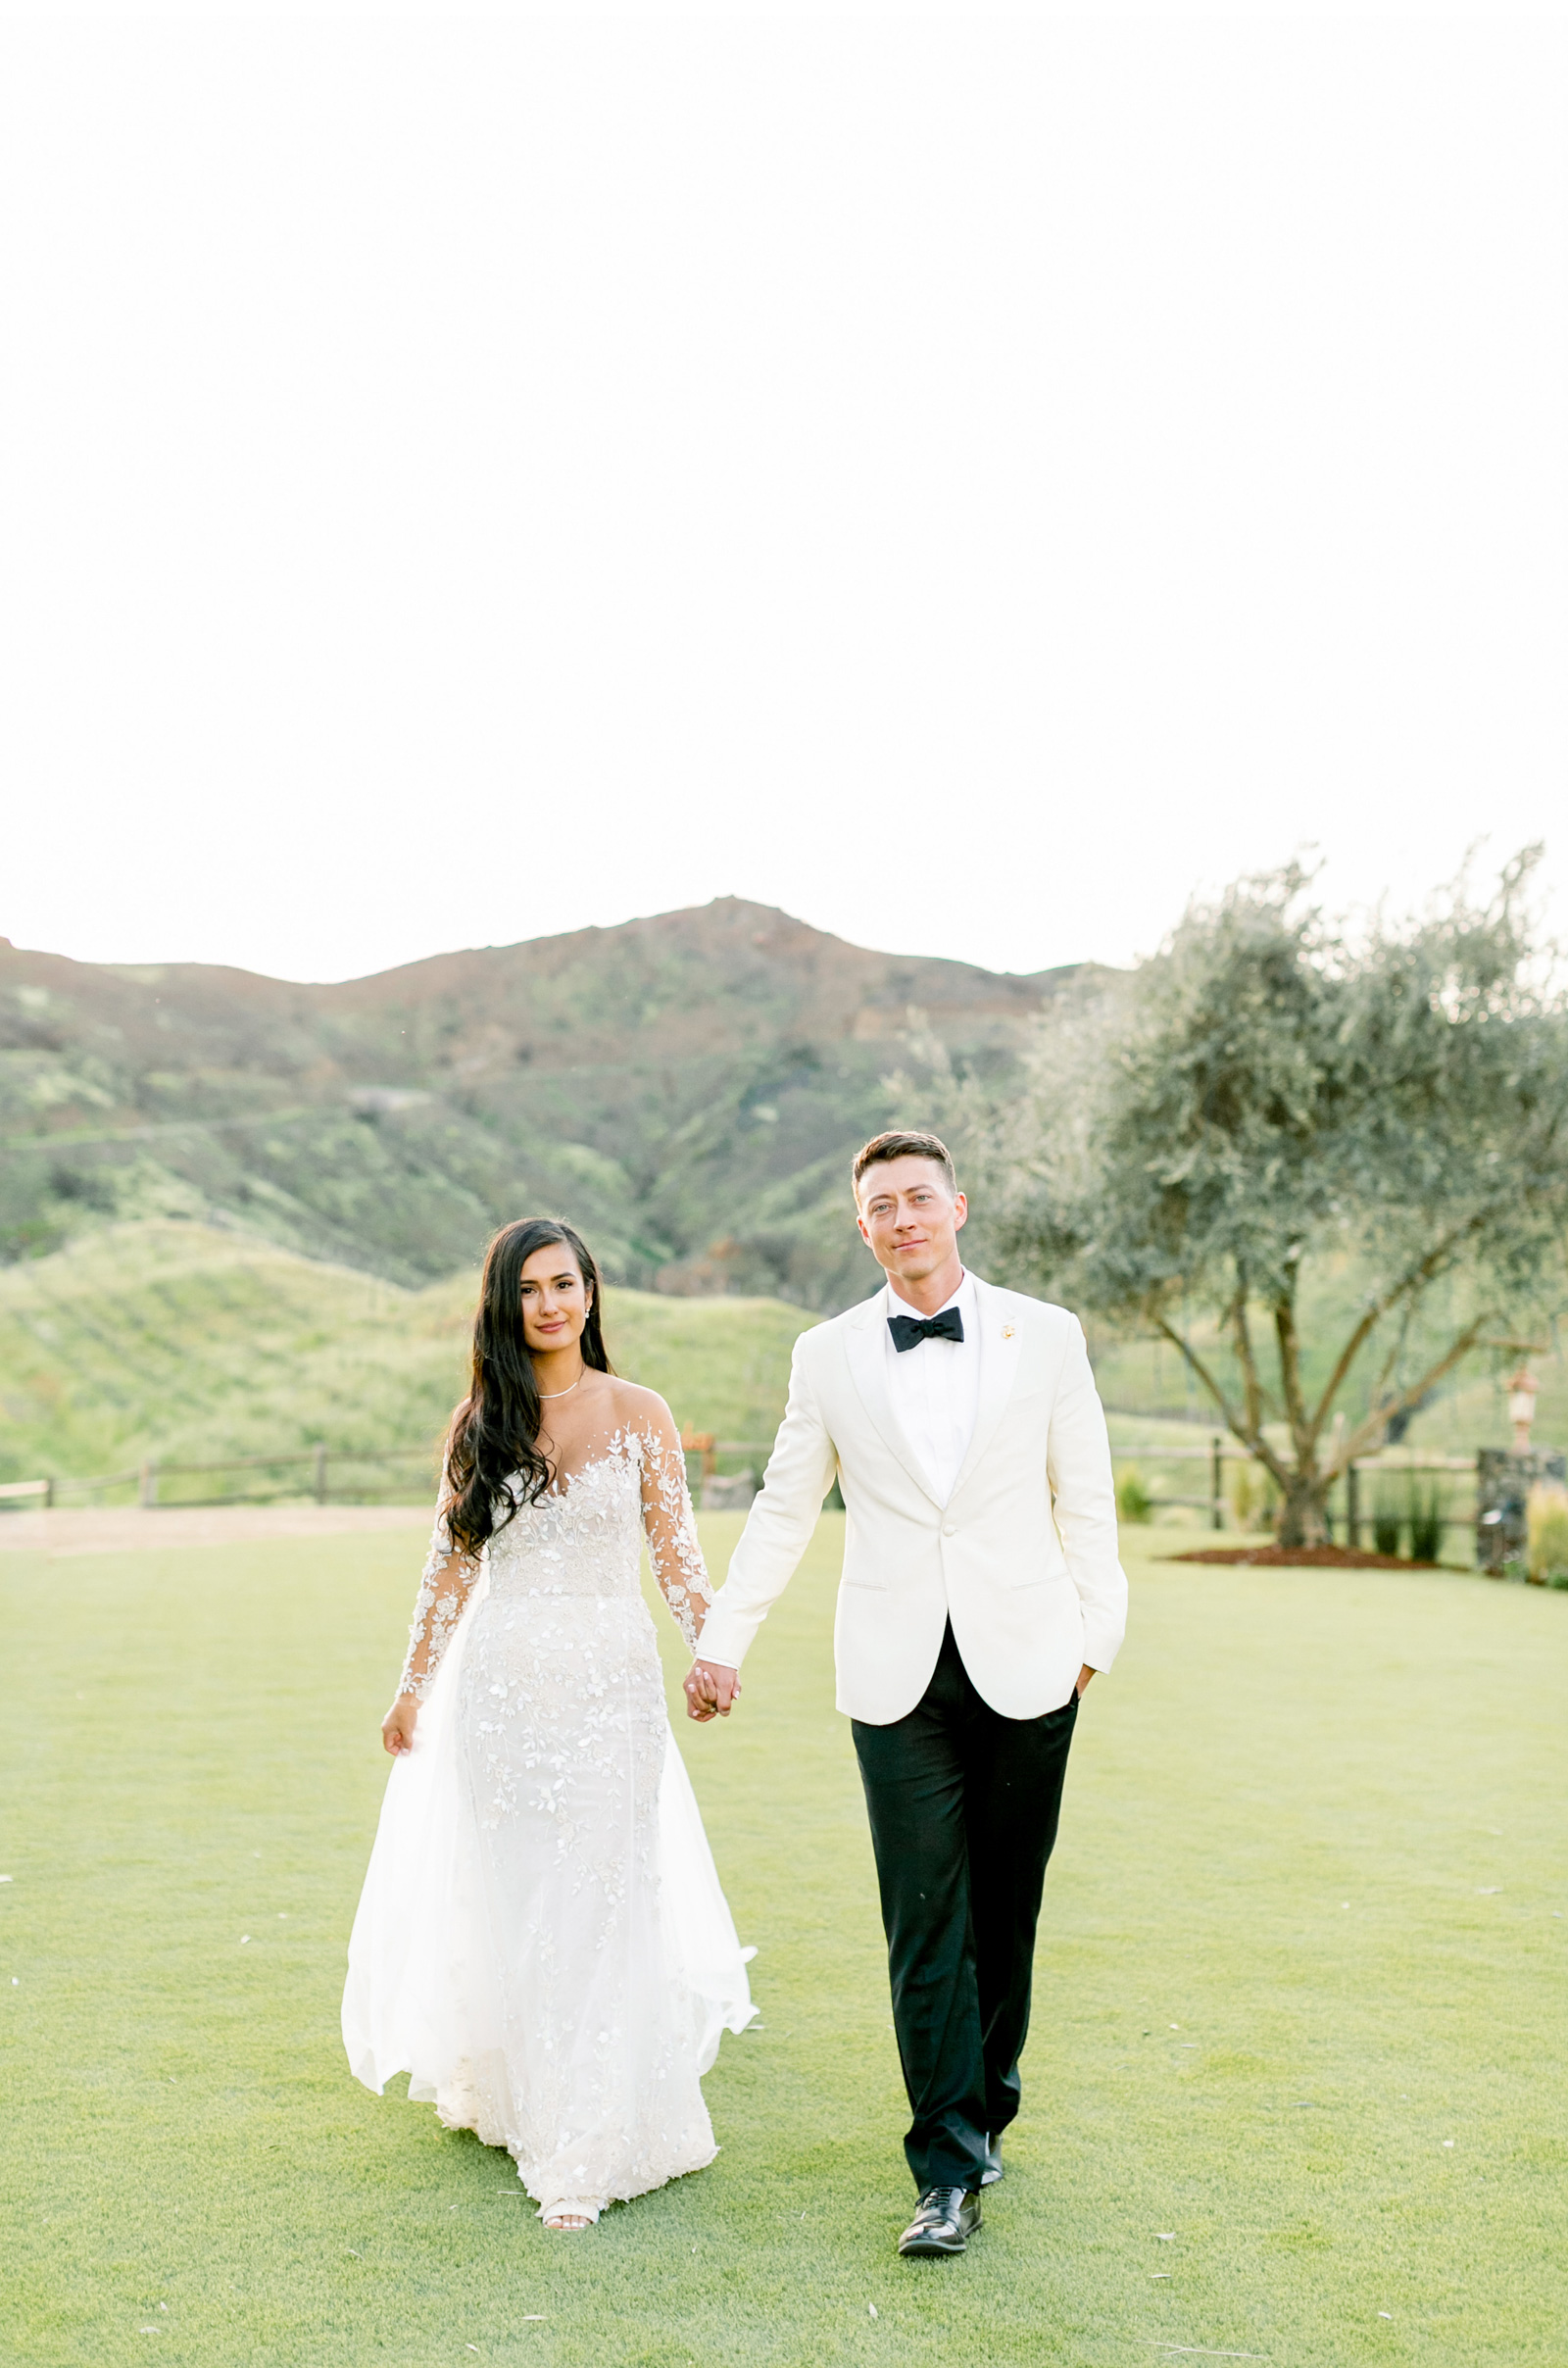 Malibu-Wedding-Photographer-Southern-California-Wedding-Venues-Malibu-Wedding-Photographer-Natalie-Schutt-Photography_14.jpg